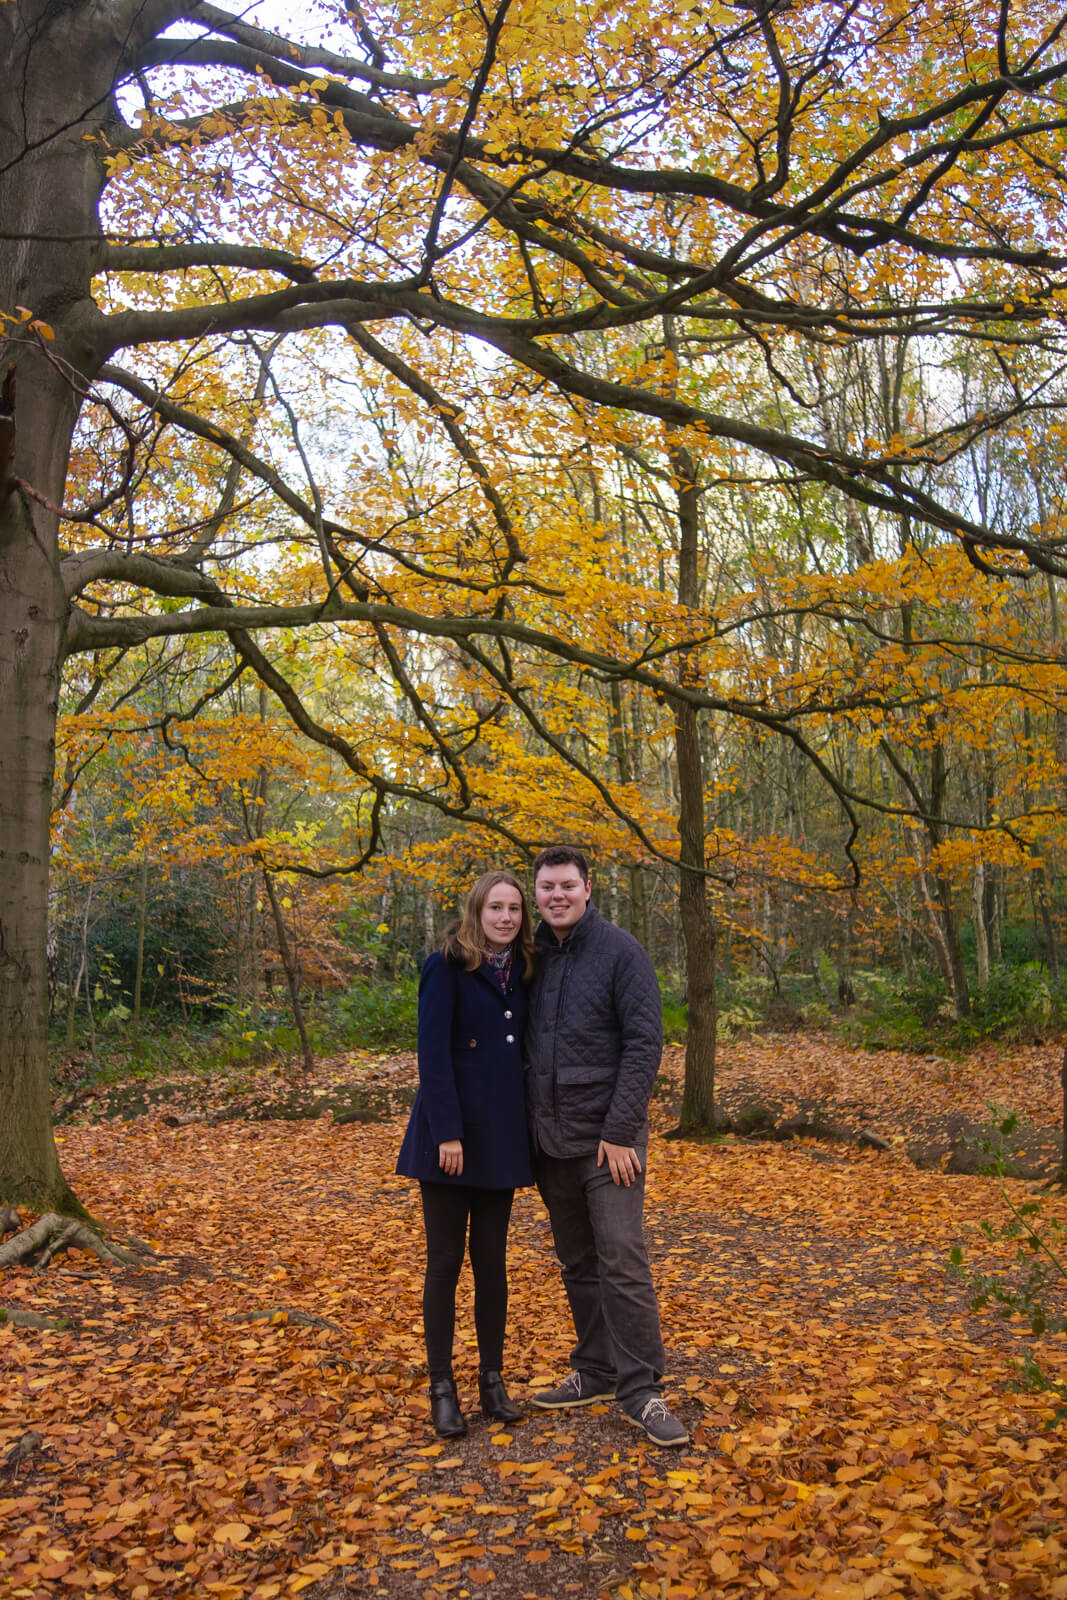 Young couple under autumnal branches in a wood clearing